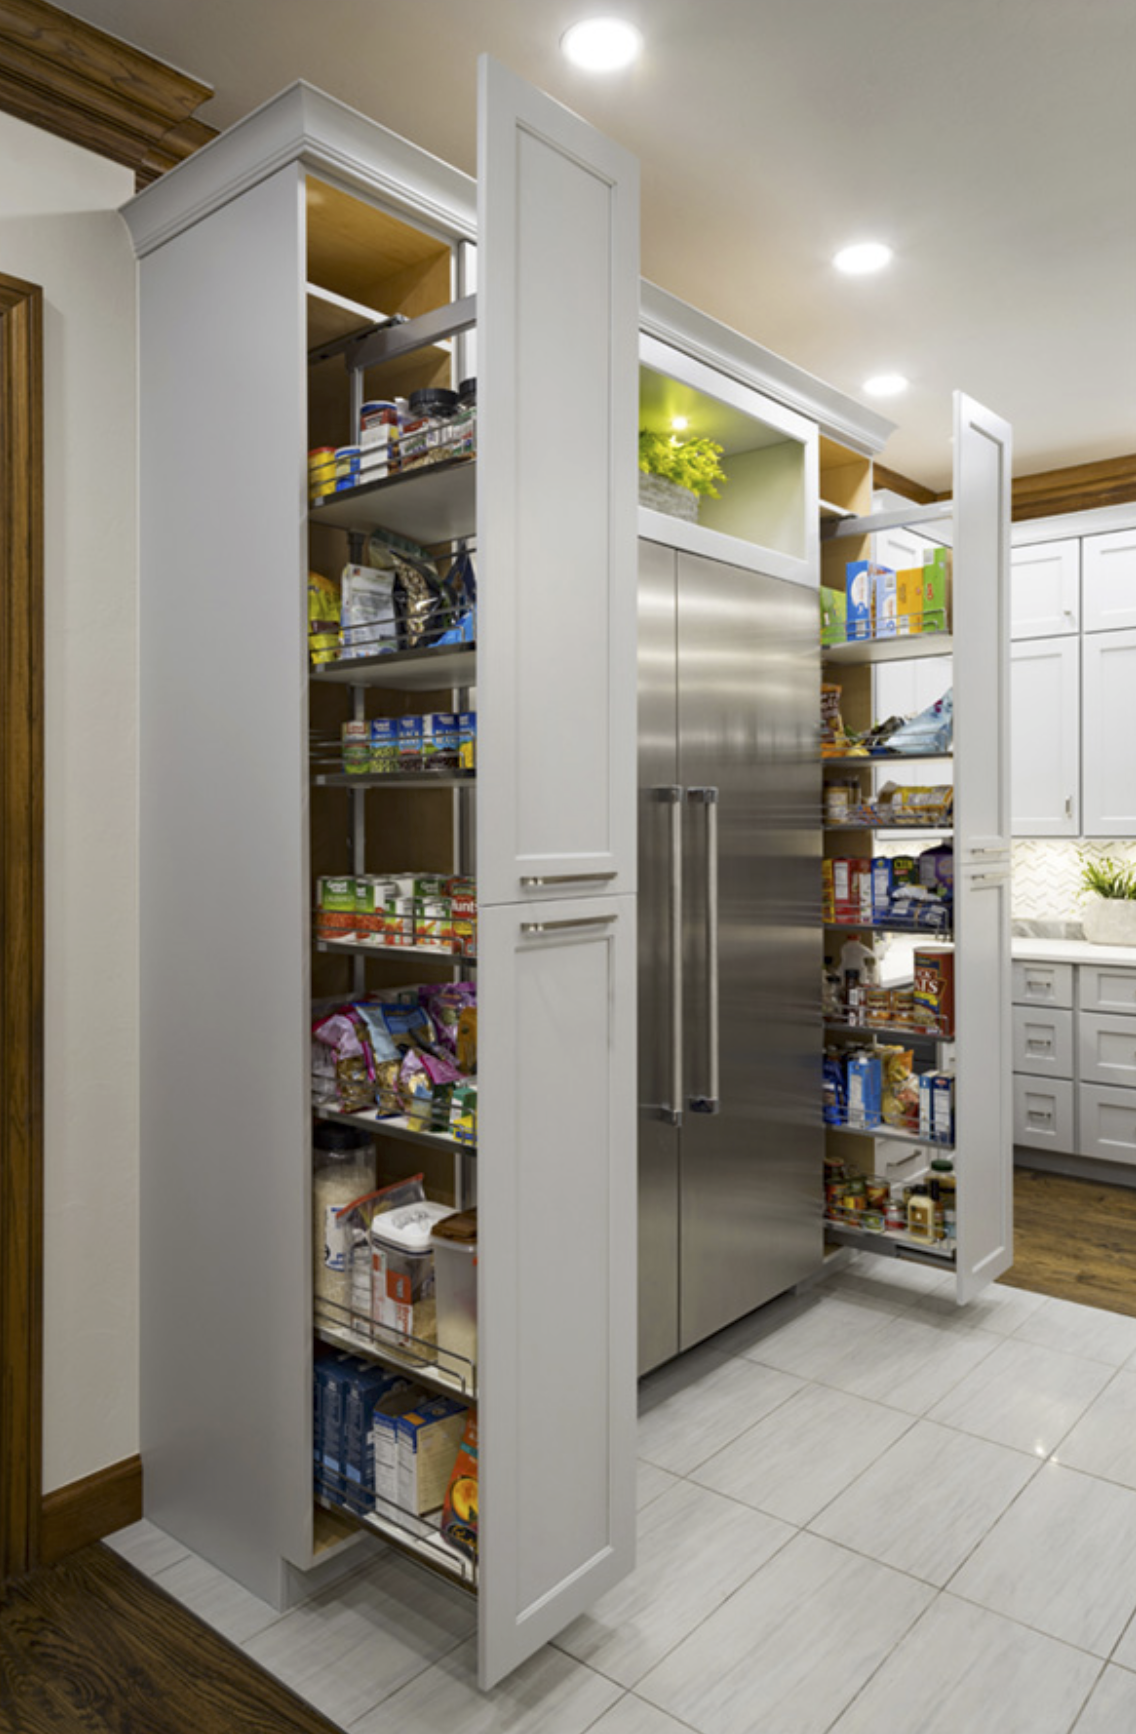 Dispensa Pantry Kessebohmer Clever Storage Dispensa Pantry